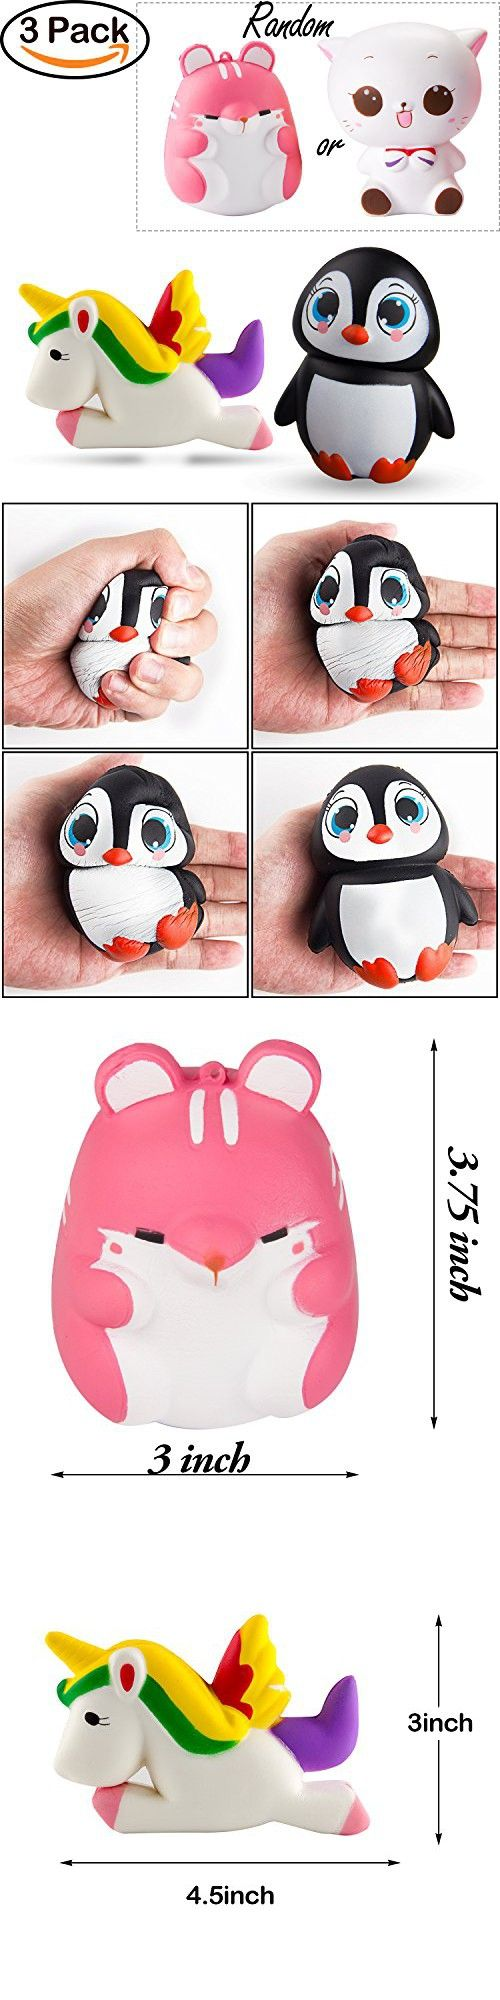 BeYumi Slow Rising Toy, 3 Pack of Kawaii Animals Squishy Toy, Cream Scented Simulation Cute Animals Toys Gift for Kids Lovely Stress Relief Toy